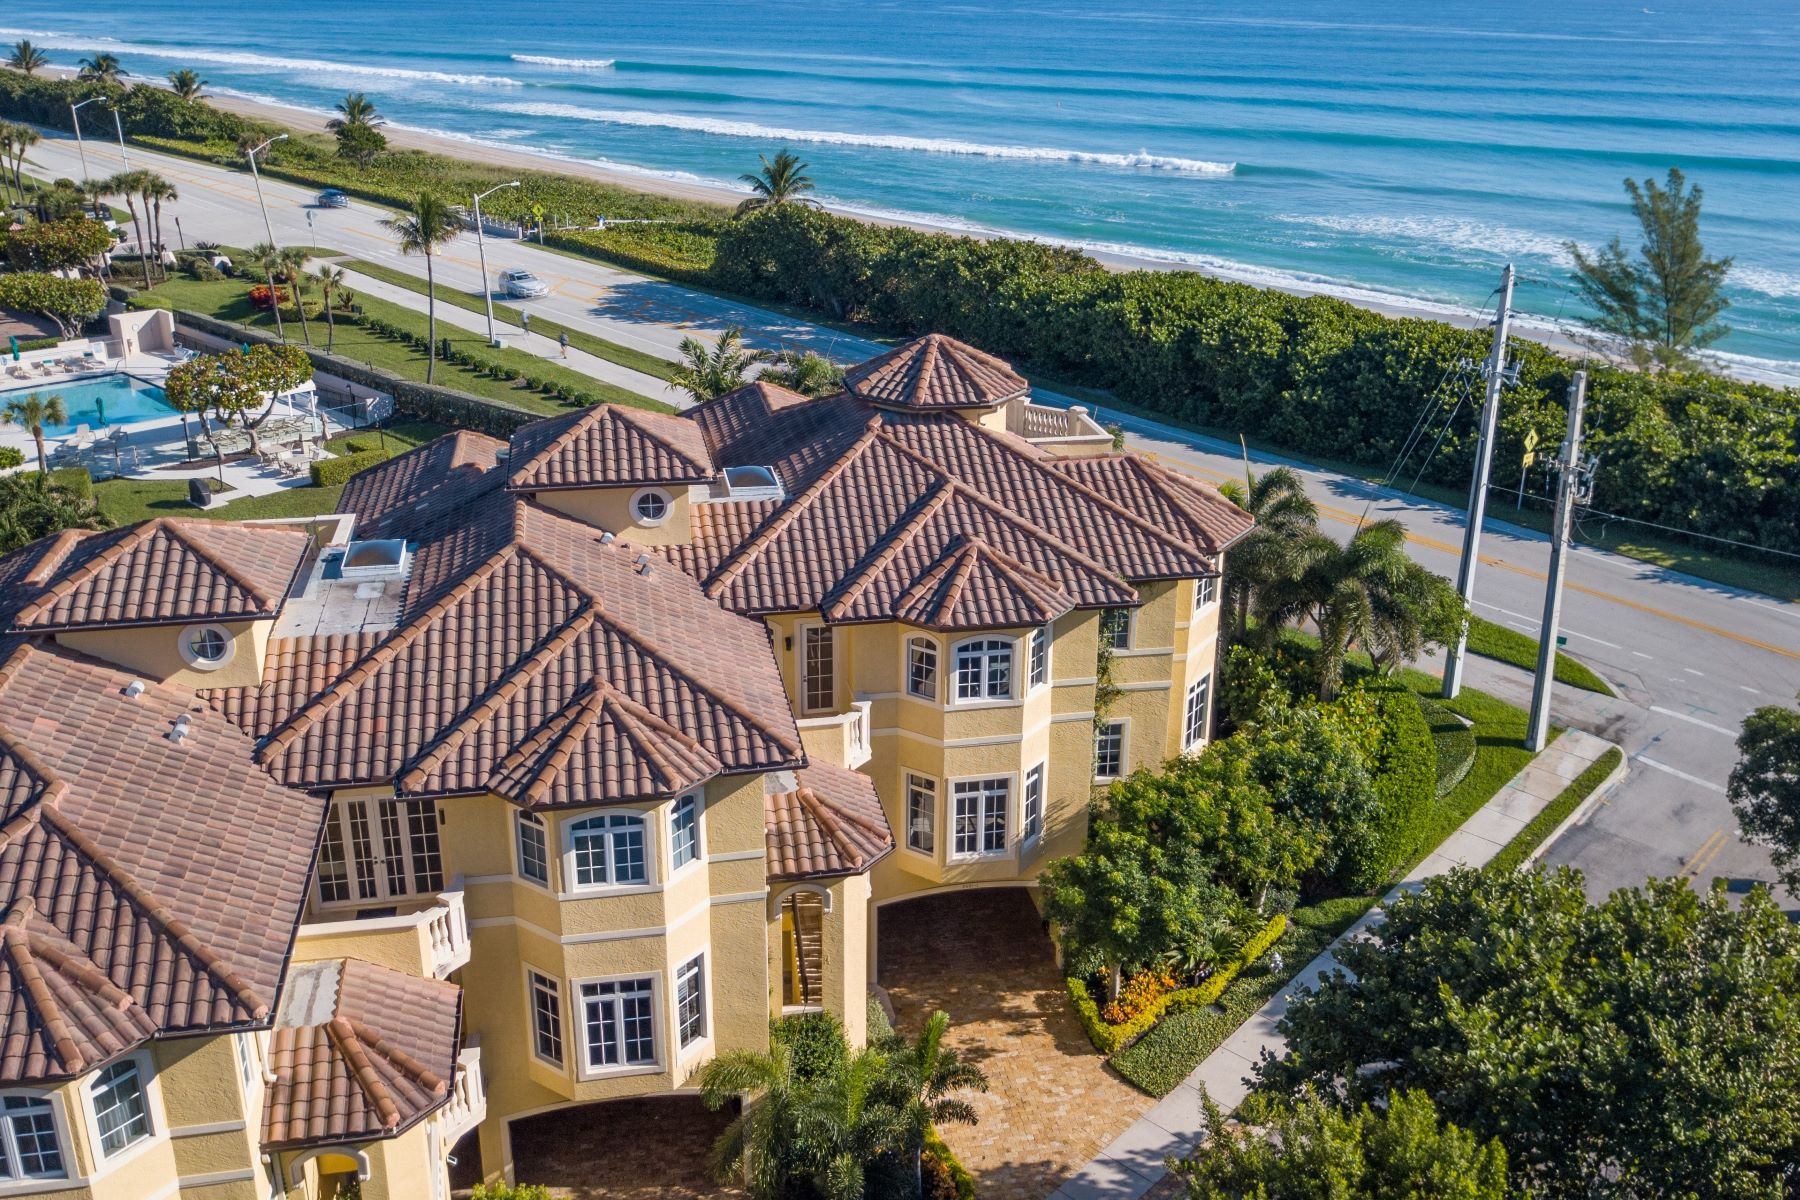 townhouses for Active at 2601 N Ocean Boulevard A Boca Raton, Florida 33431 United States